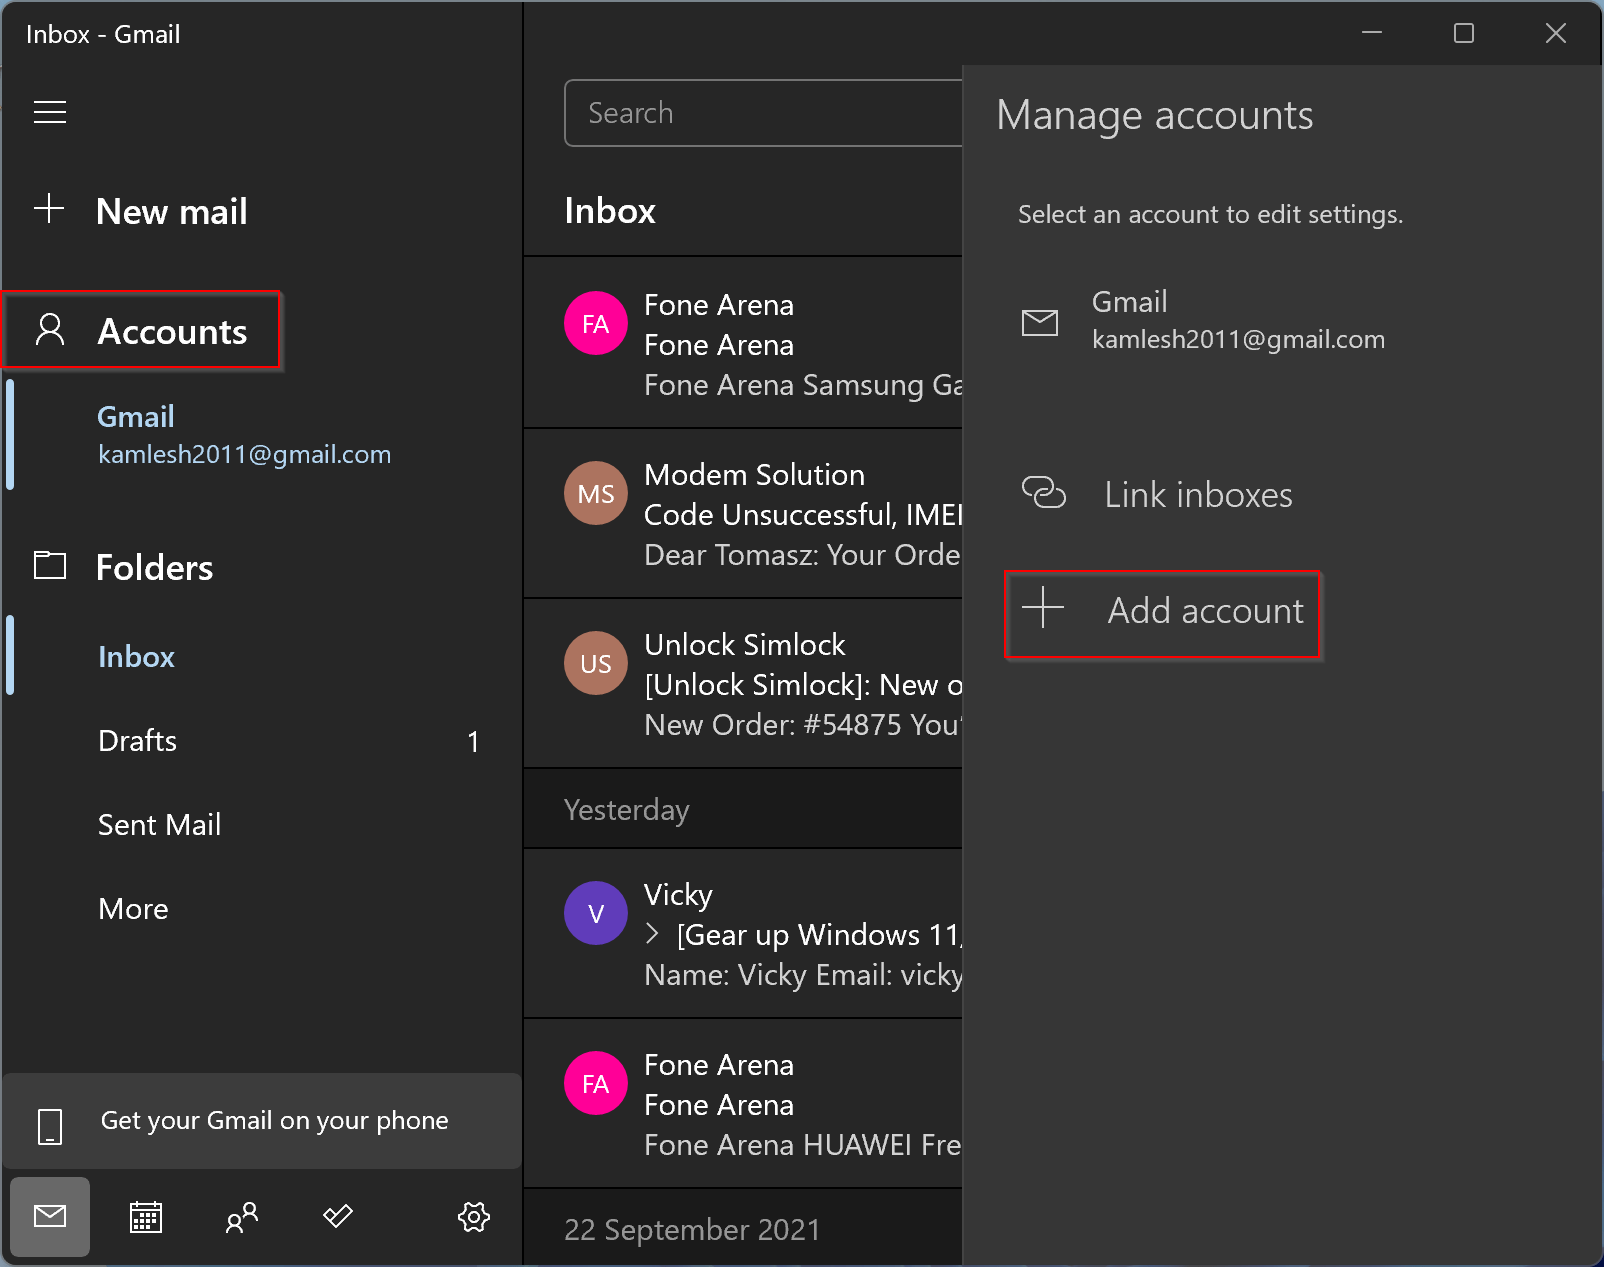 How to Add or Remove Gmail Account to/from Mail App in Windows 11?